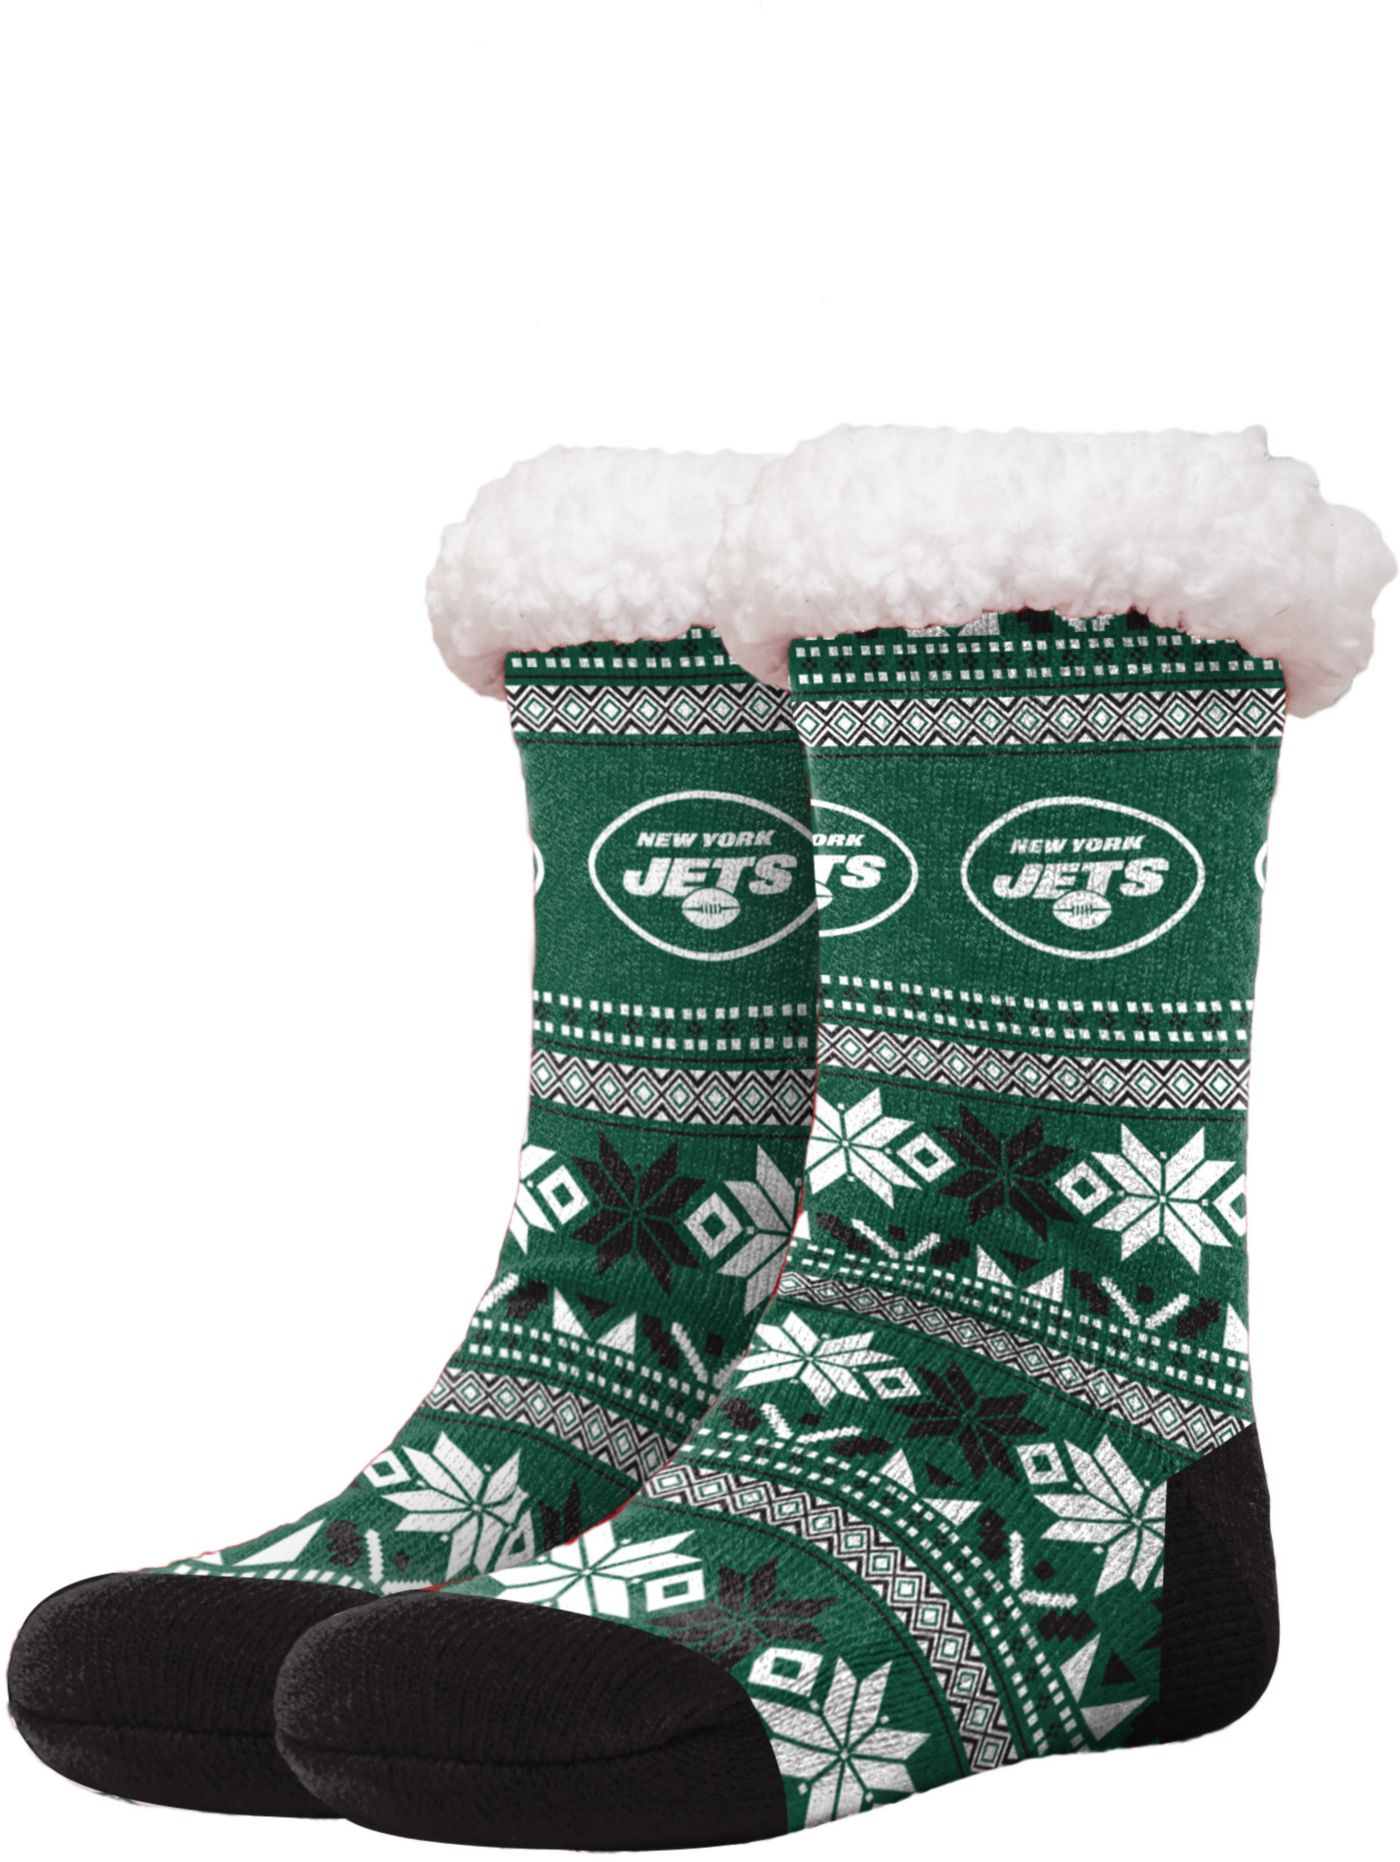 FOCO New York Jets Footy Slippers